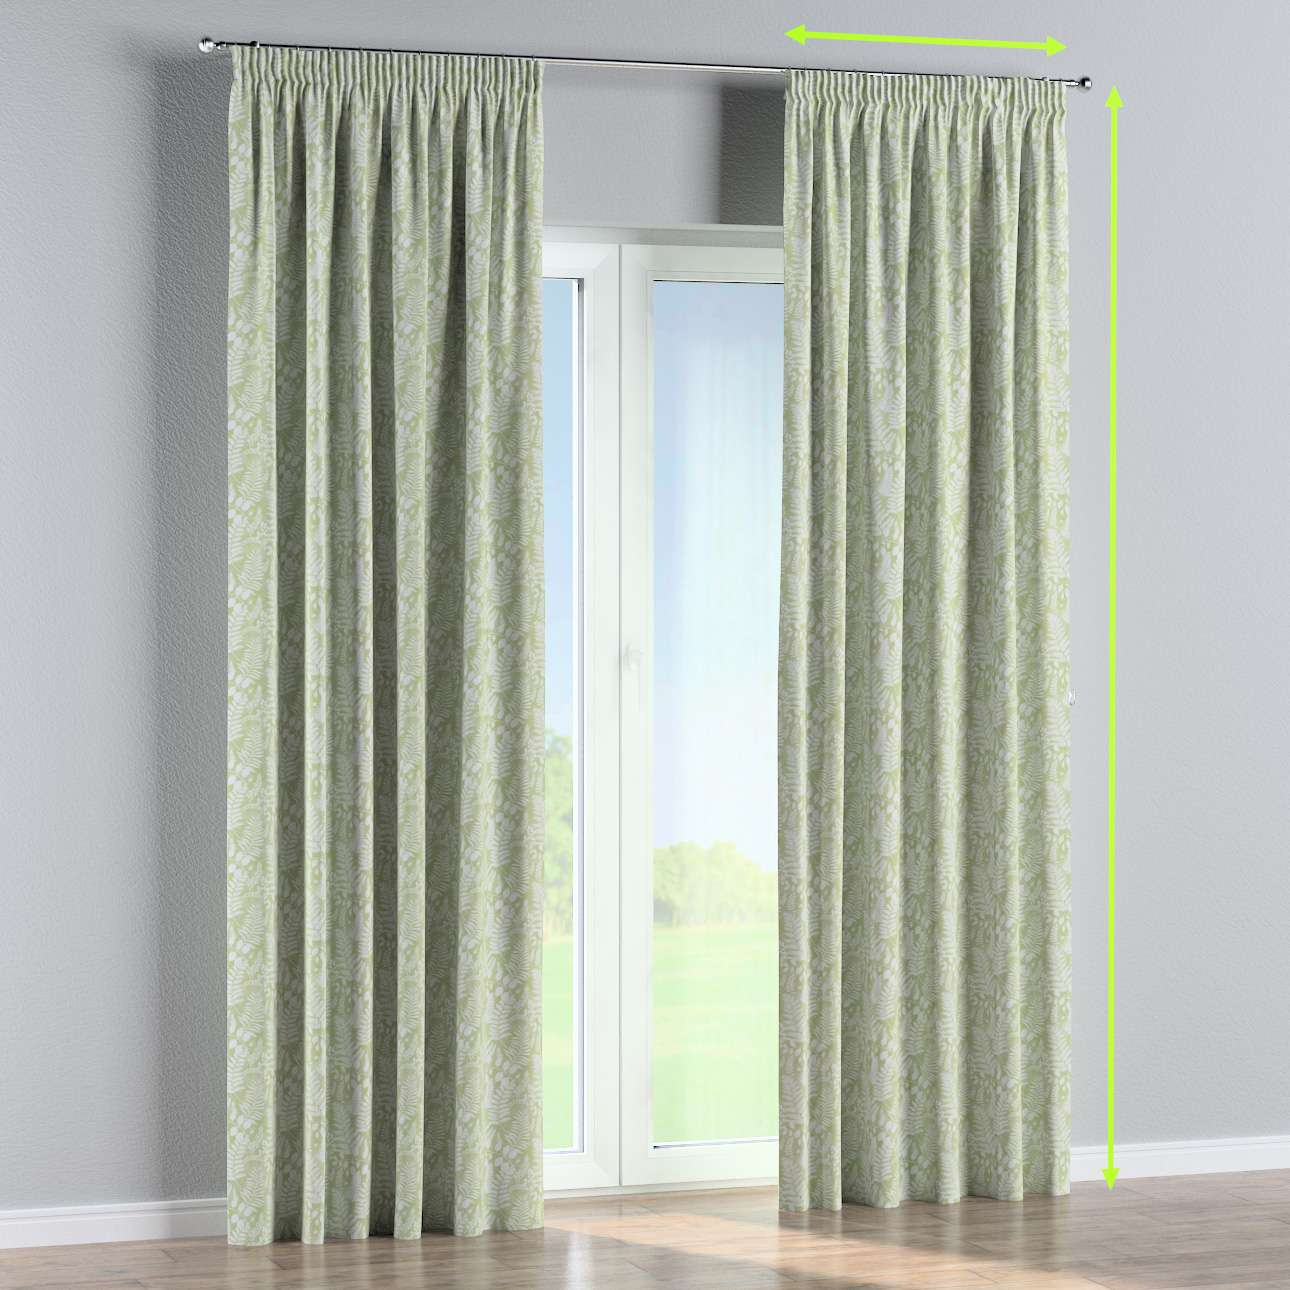 Pencil pleat curtain in collection Pastel Forest, fabric: 142-49